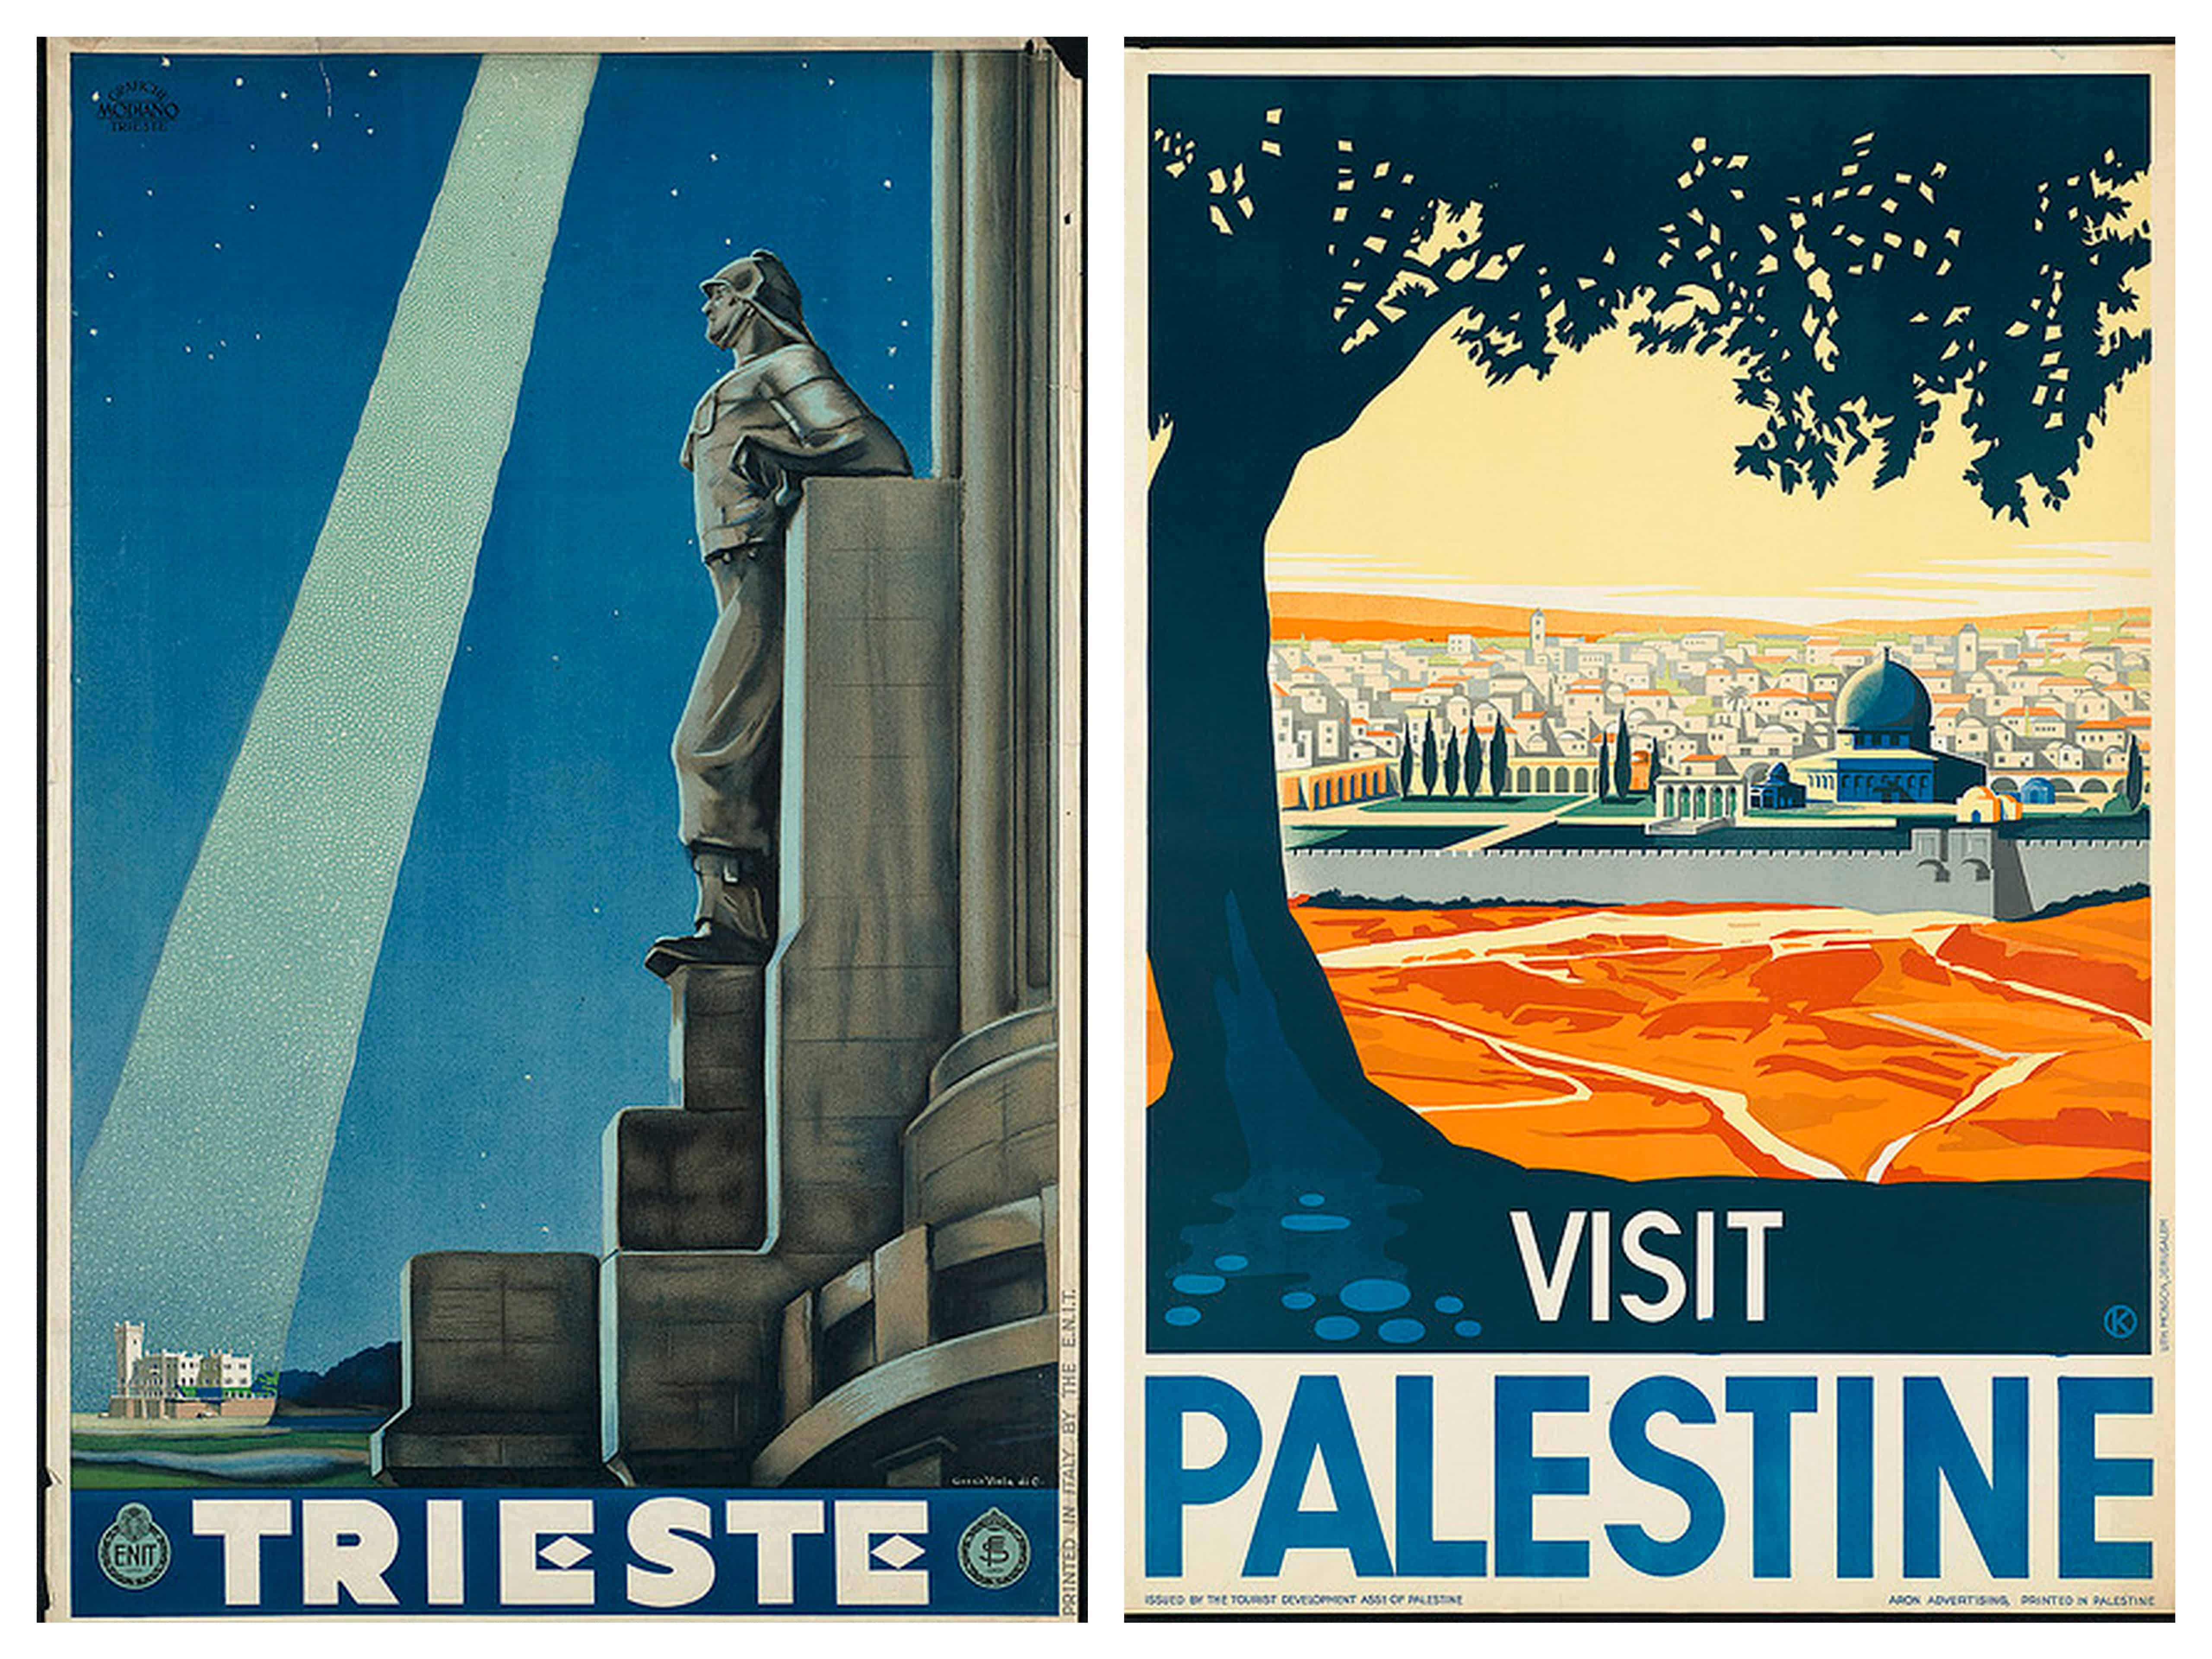 trieste and palestine vintage travel posters